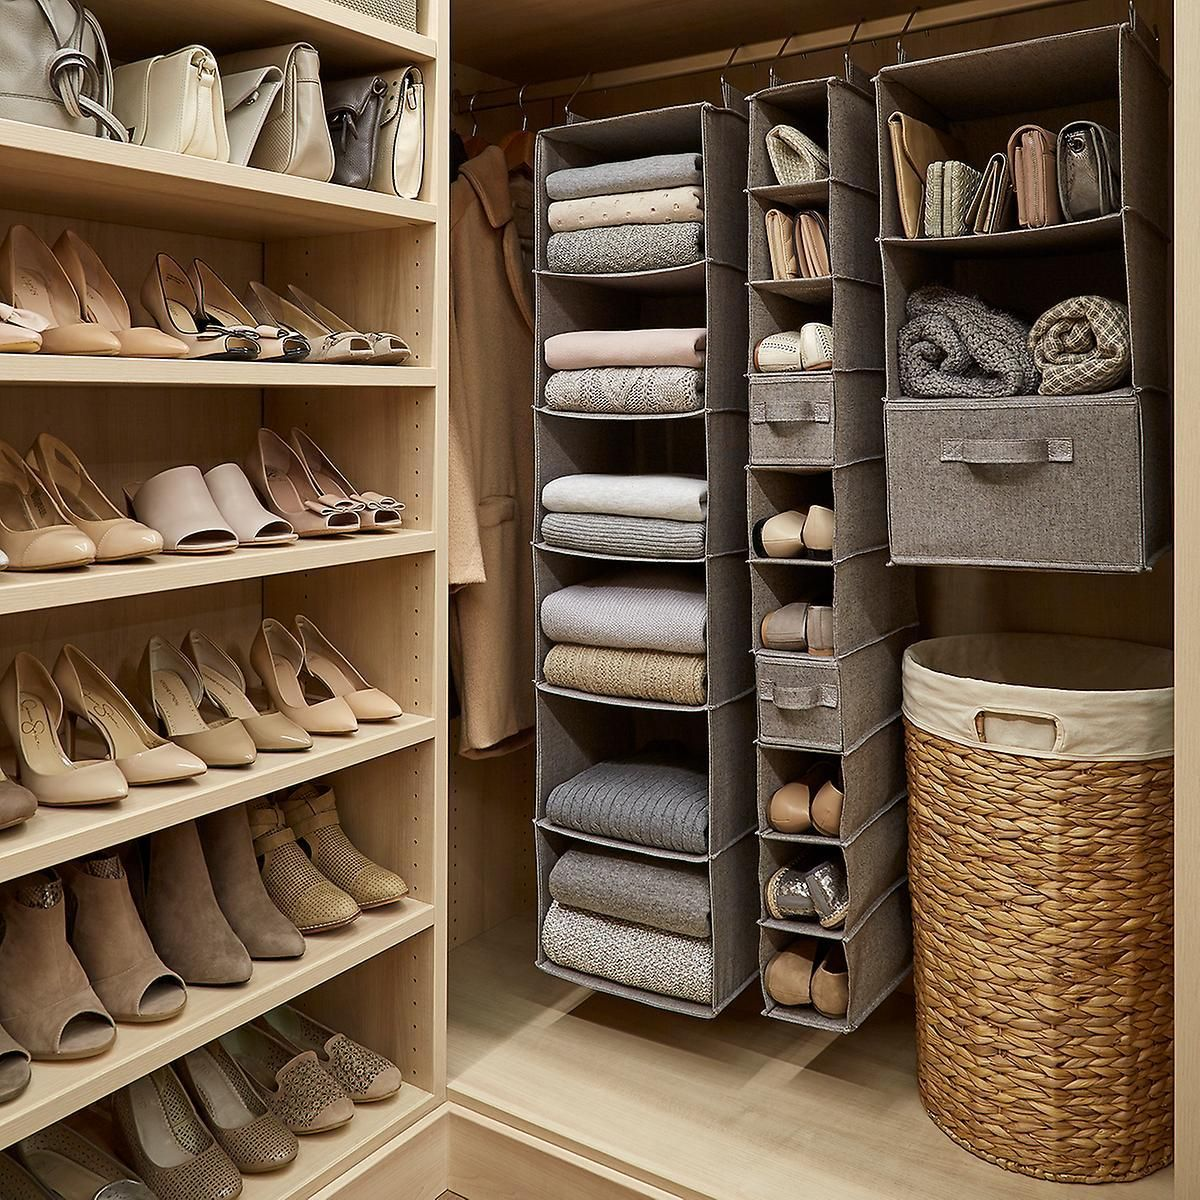 Hanging Closet Organizers Are A Great Way To Make The Most Of The